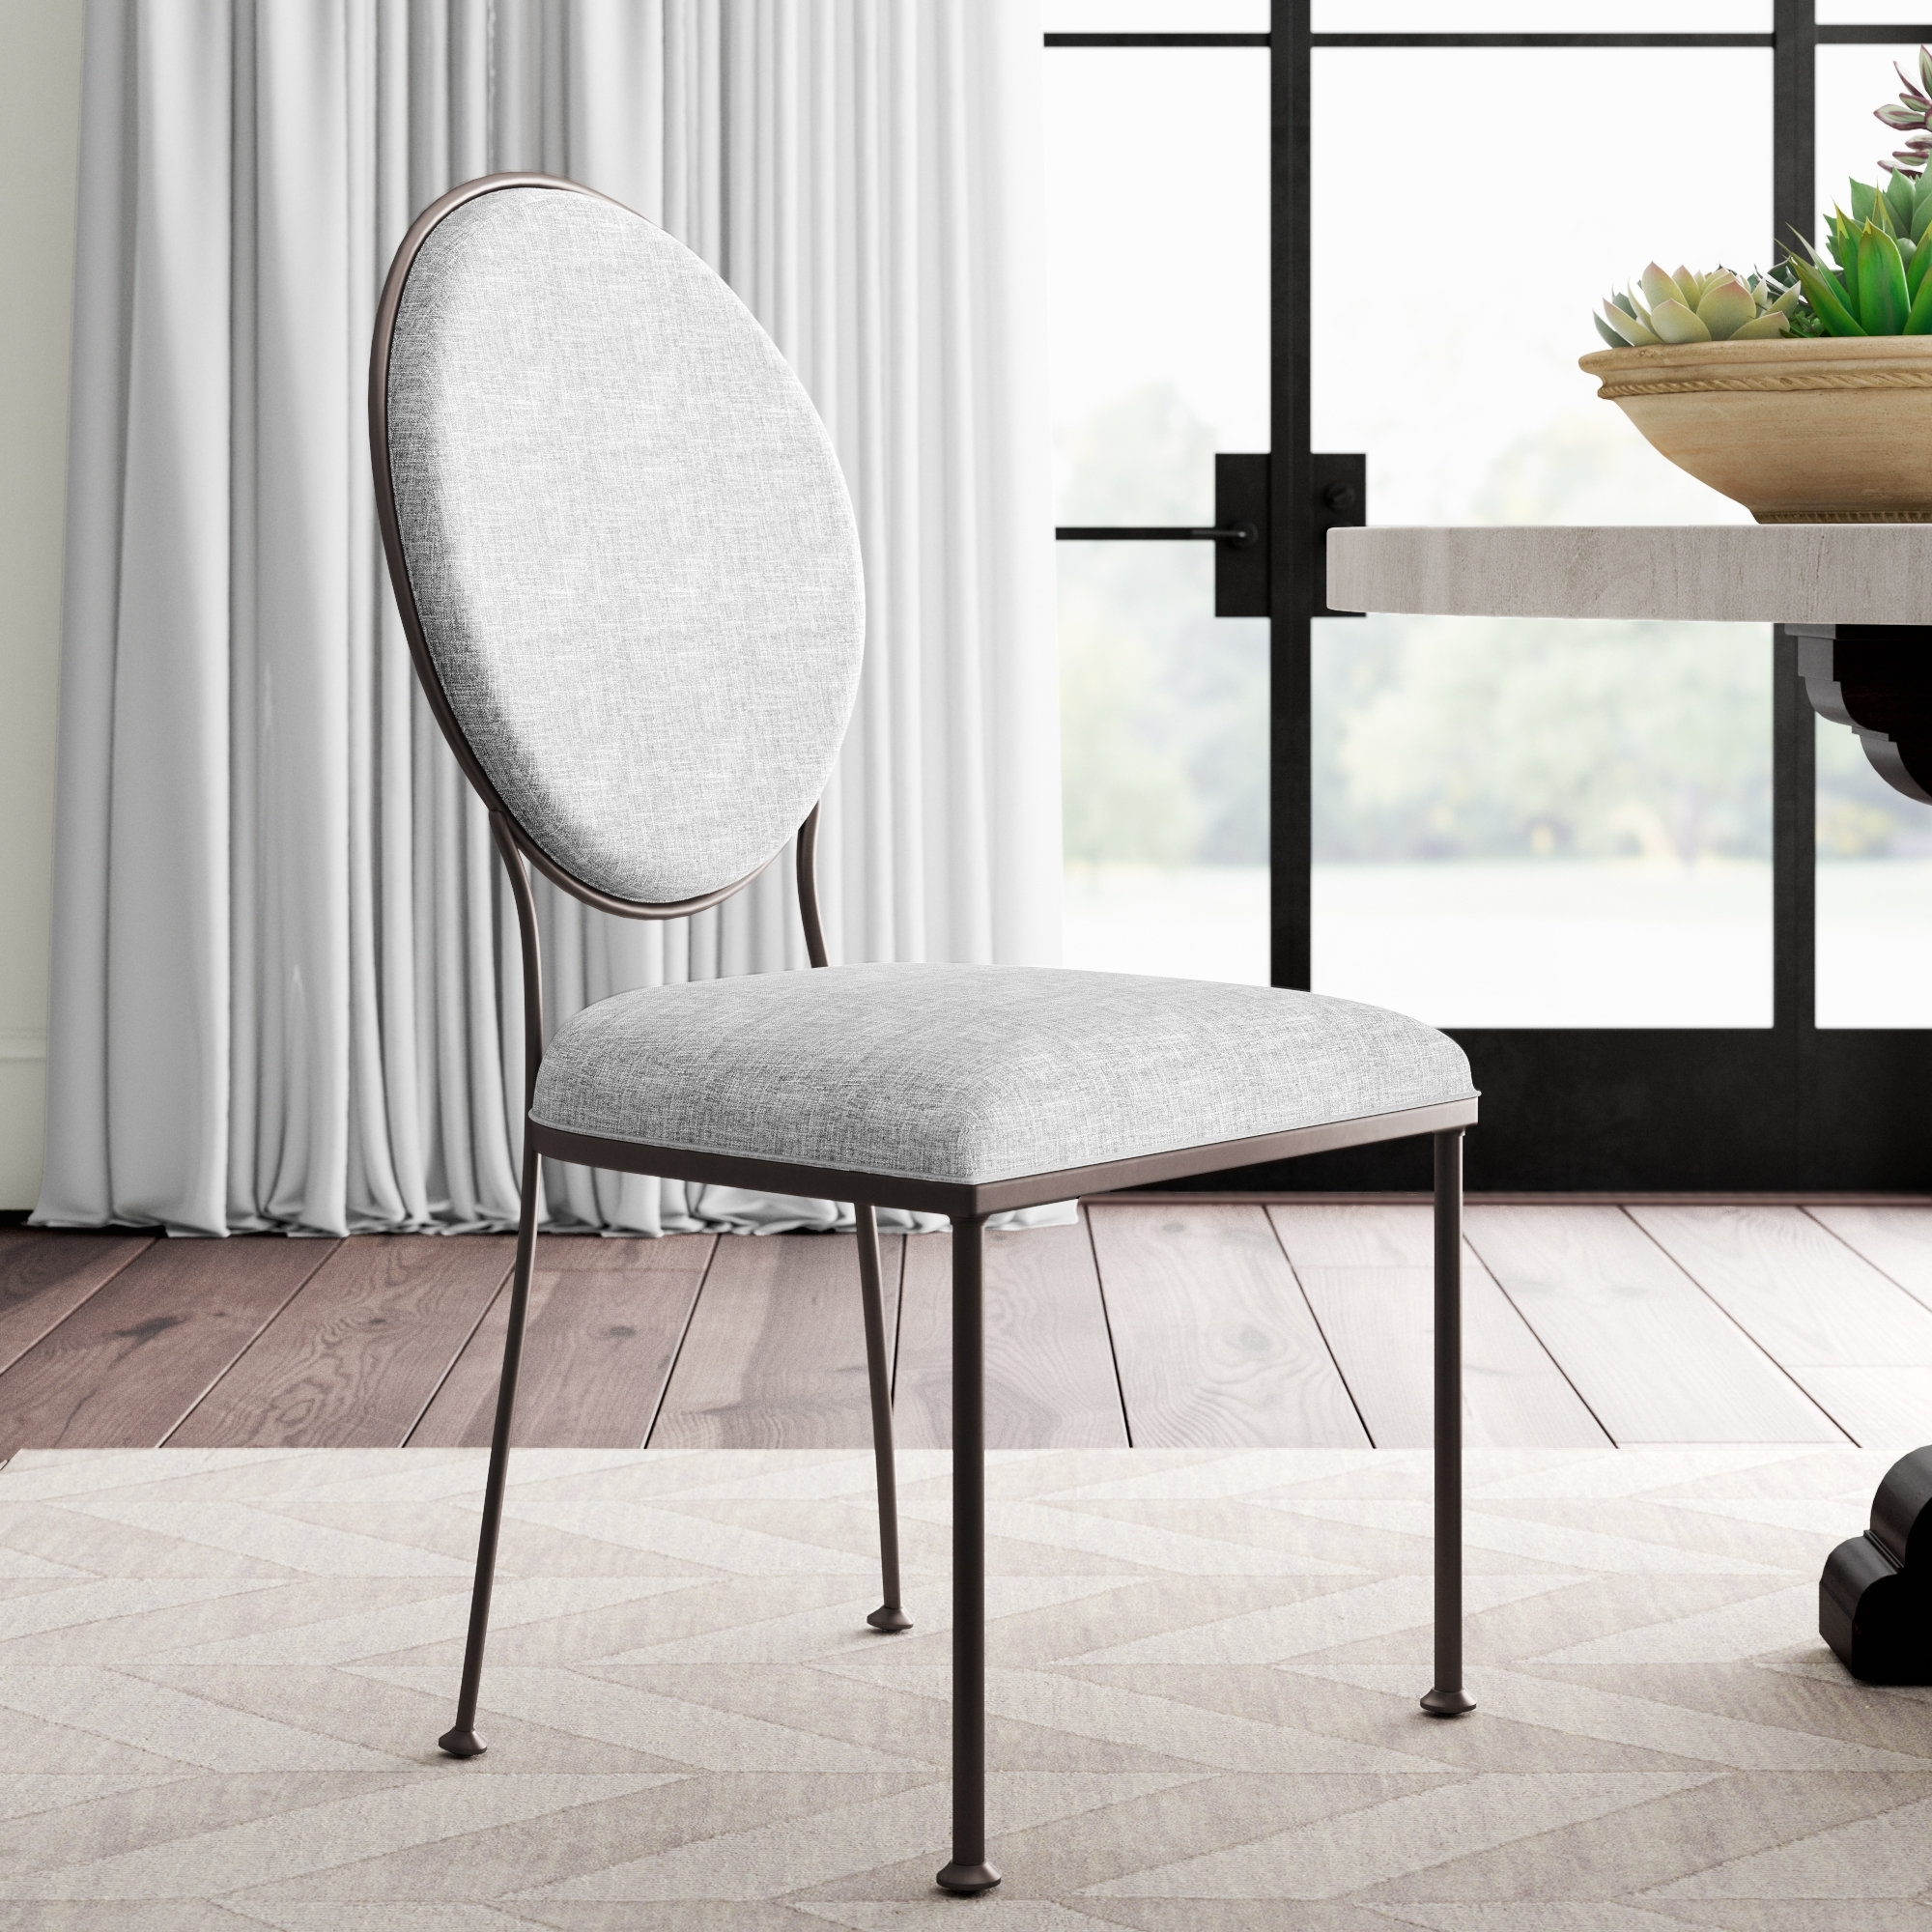 Wayfair Within 2017 Caira Black 5 Piece Round Dining Sets With Upholstered Side Chairs (View 23 of 25)